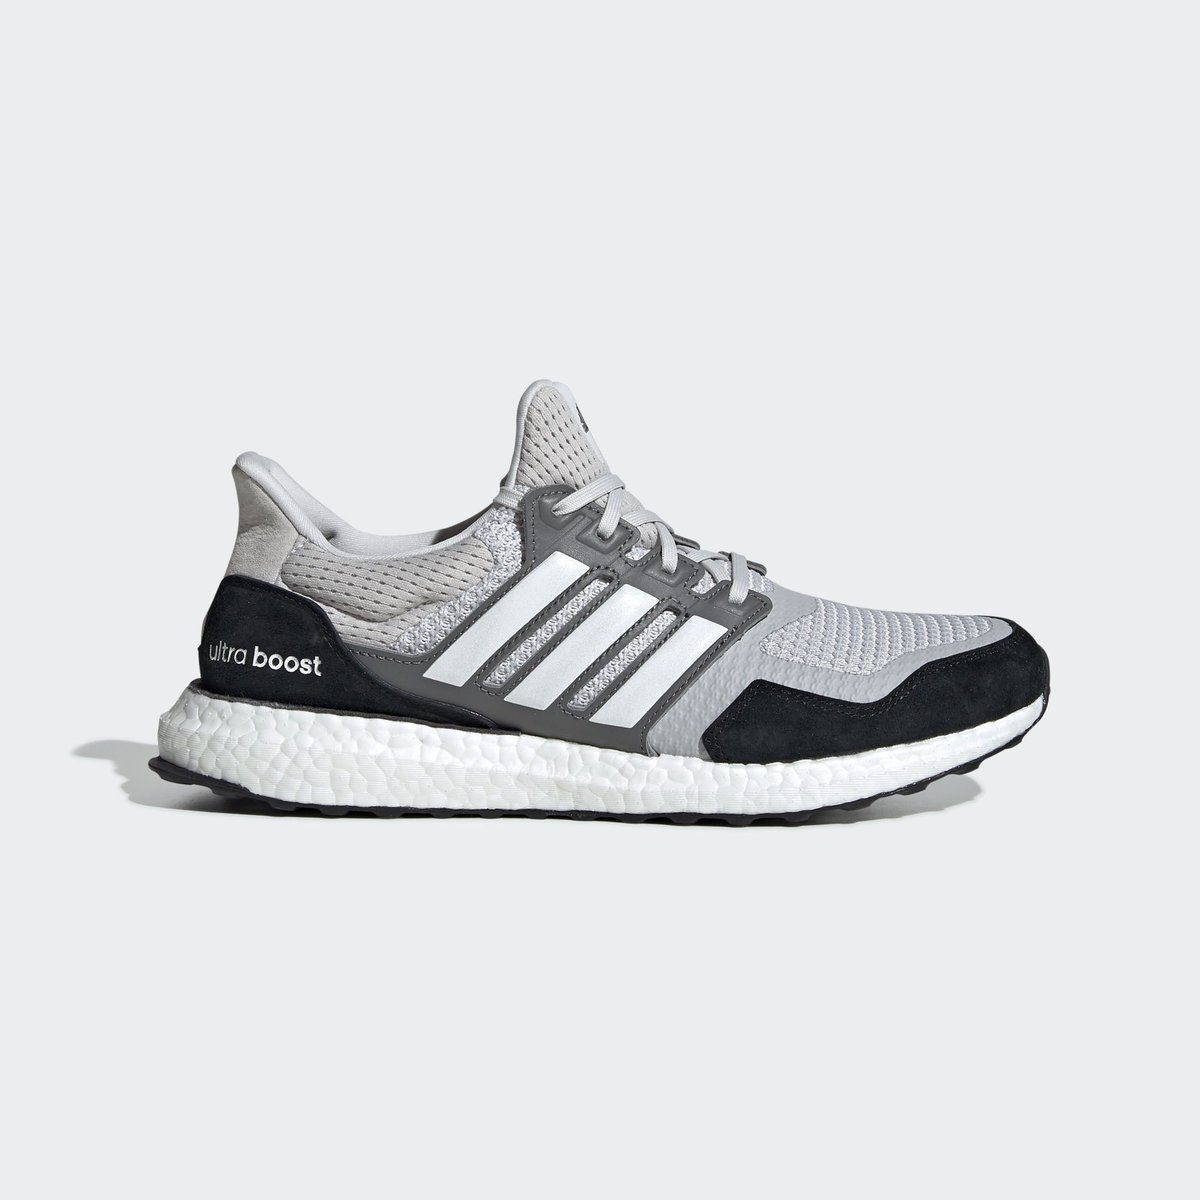 pretty nice 8d34f eb5d8 Released today on  FinishLine. adidas Ultra Boost Suede   Leather. —   http   bit.ly 2PWUrly  adpic.twitter.com gEigJ6PPnY